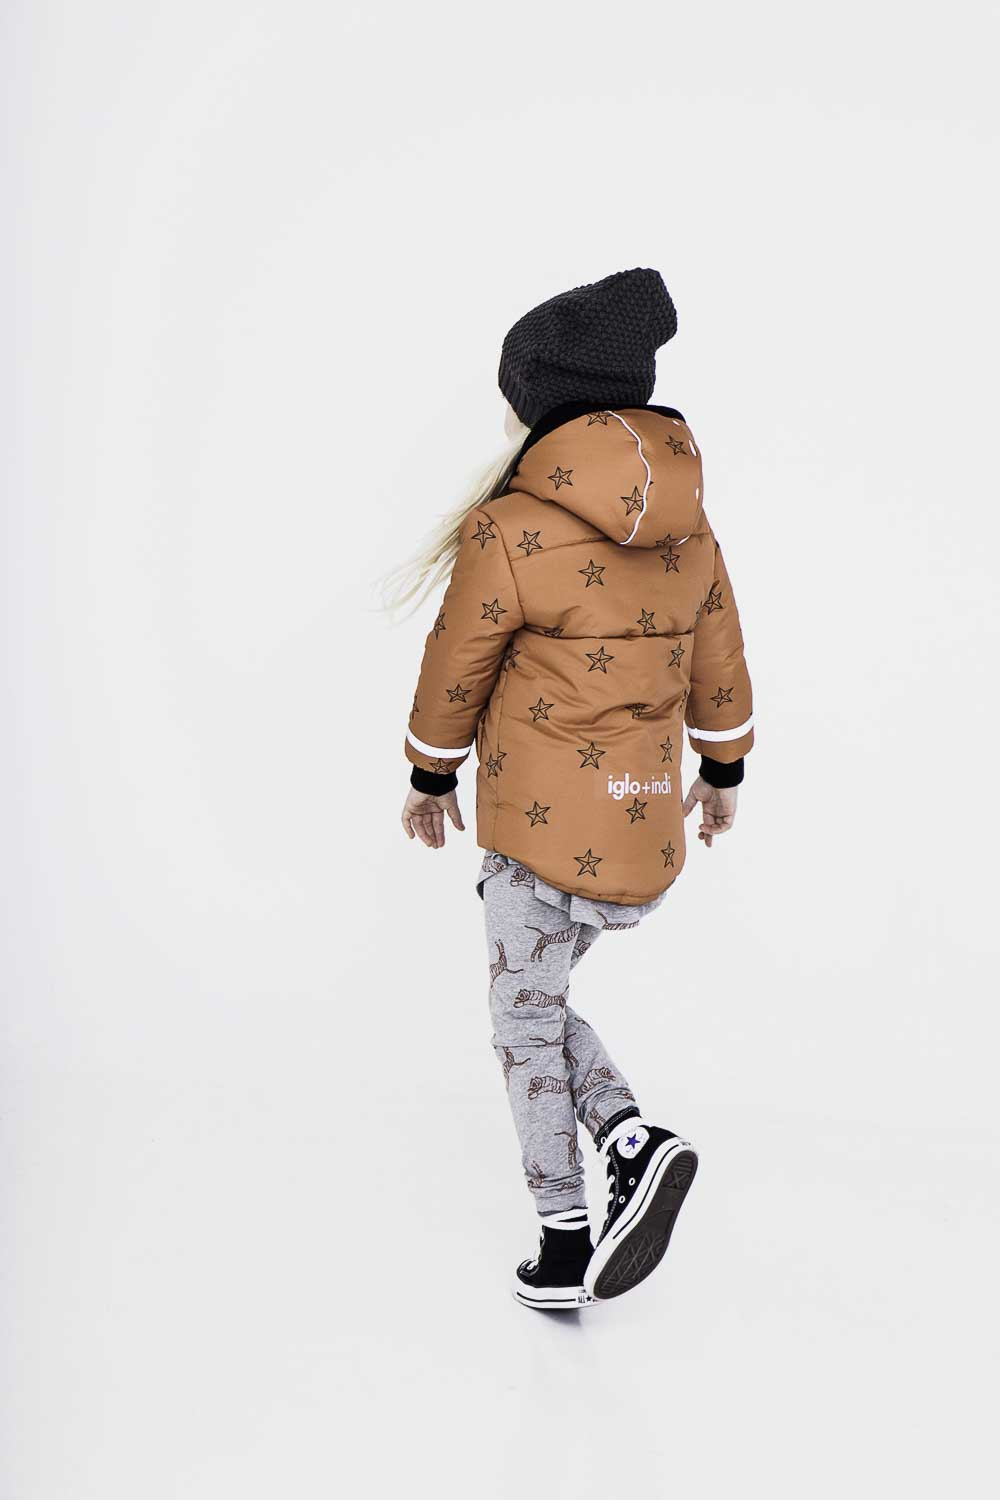 iglo-indi-winter-2017-2018-kidsfashion-trends-aw-kindermode-9